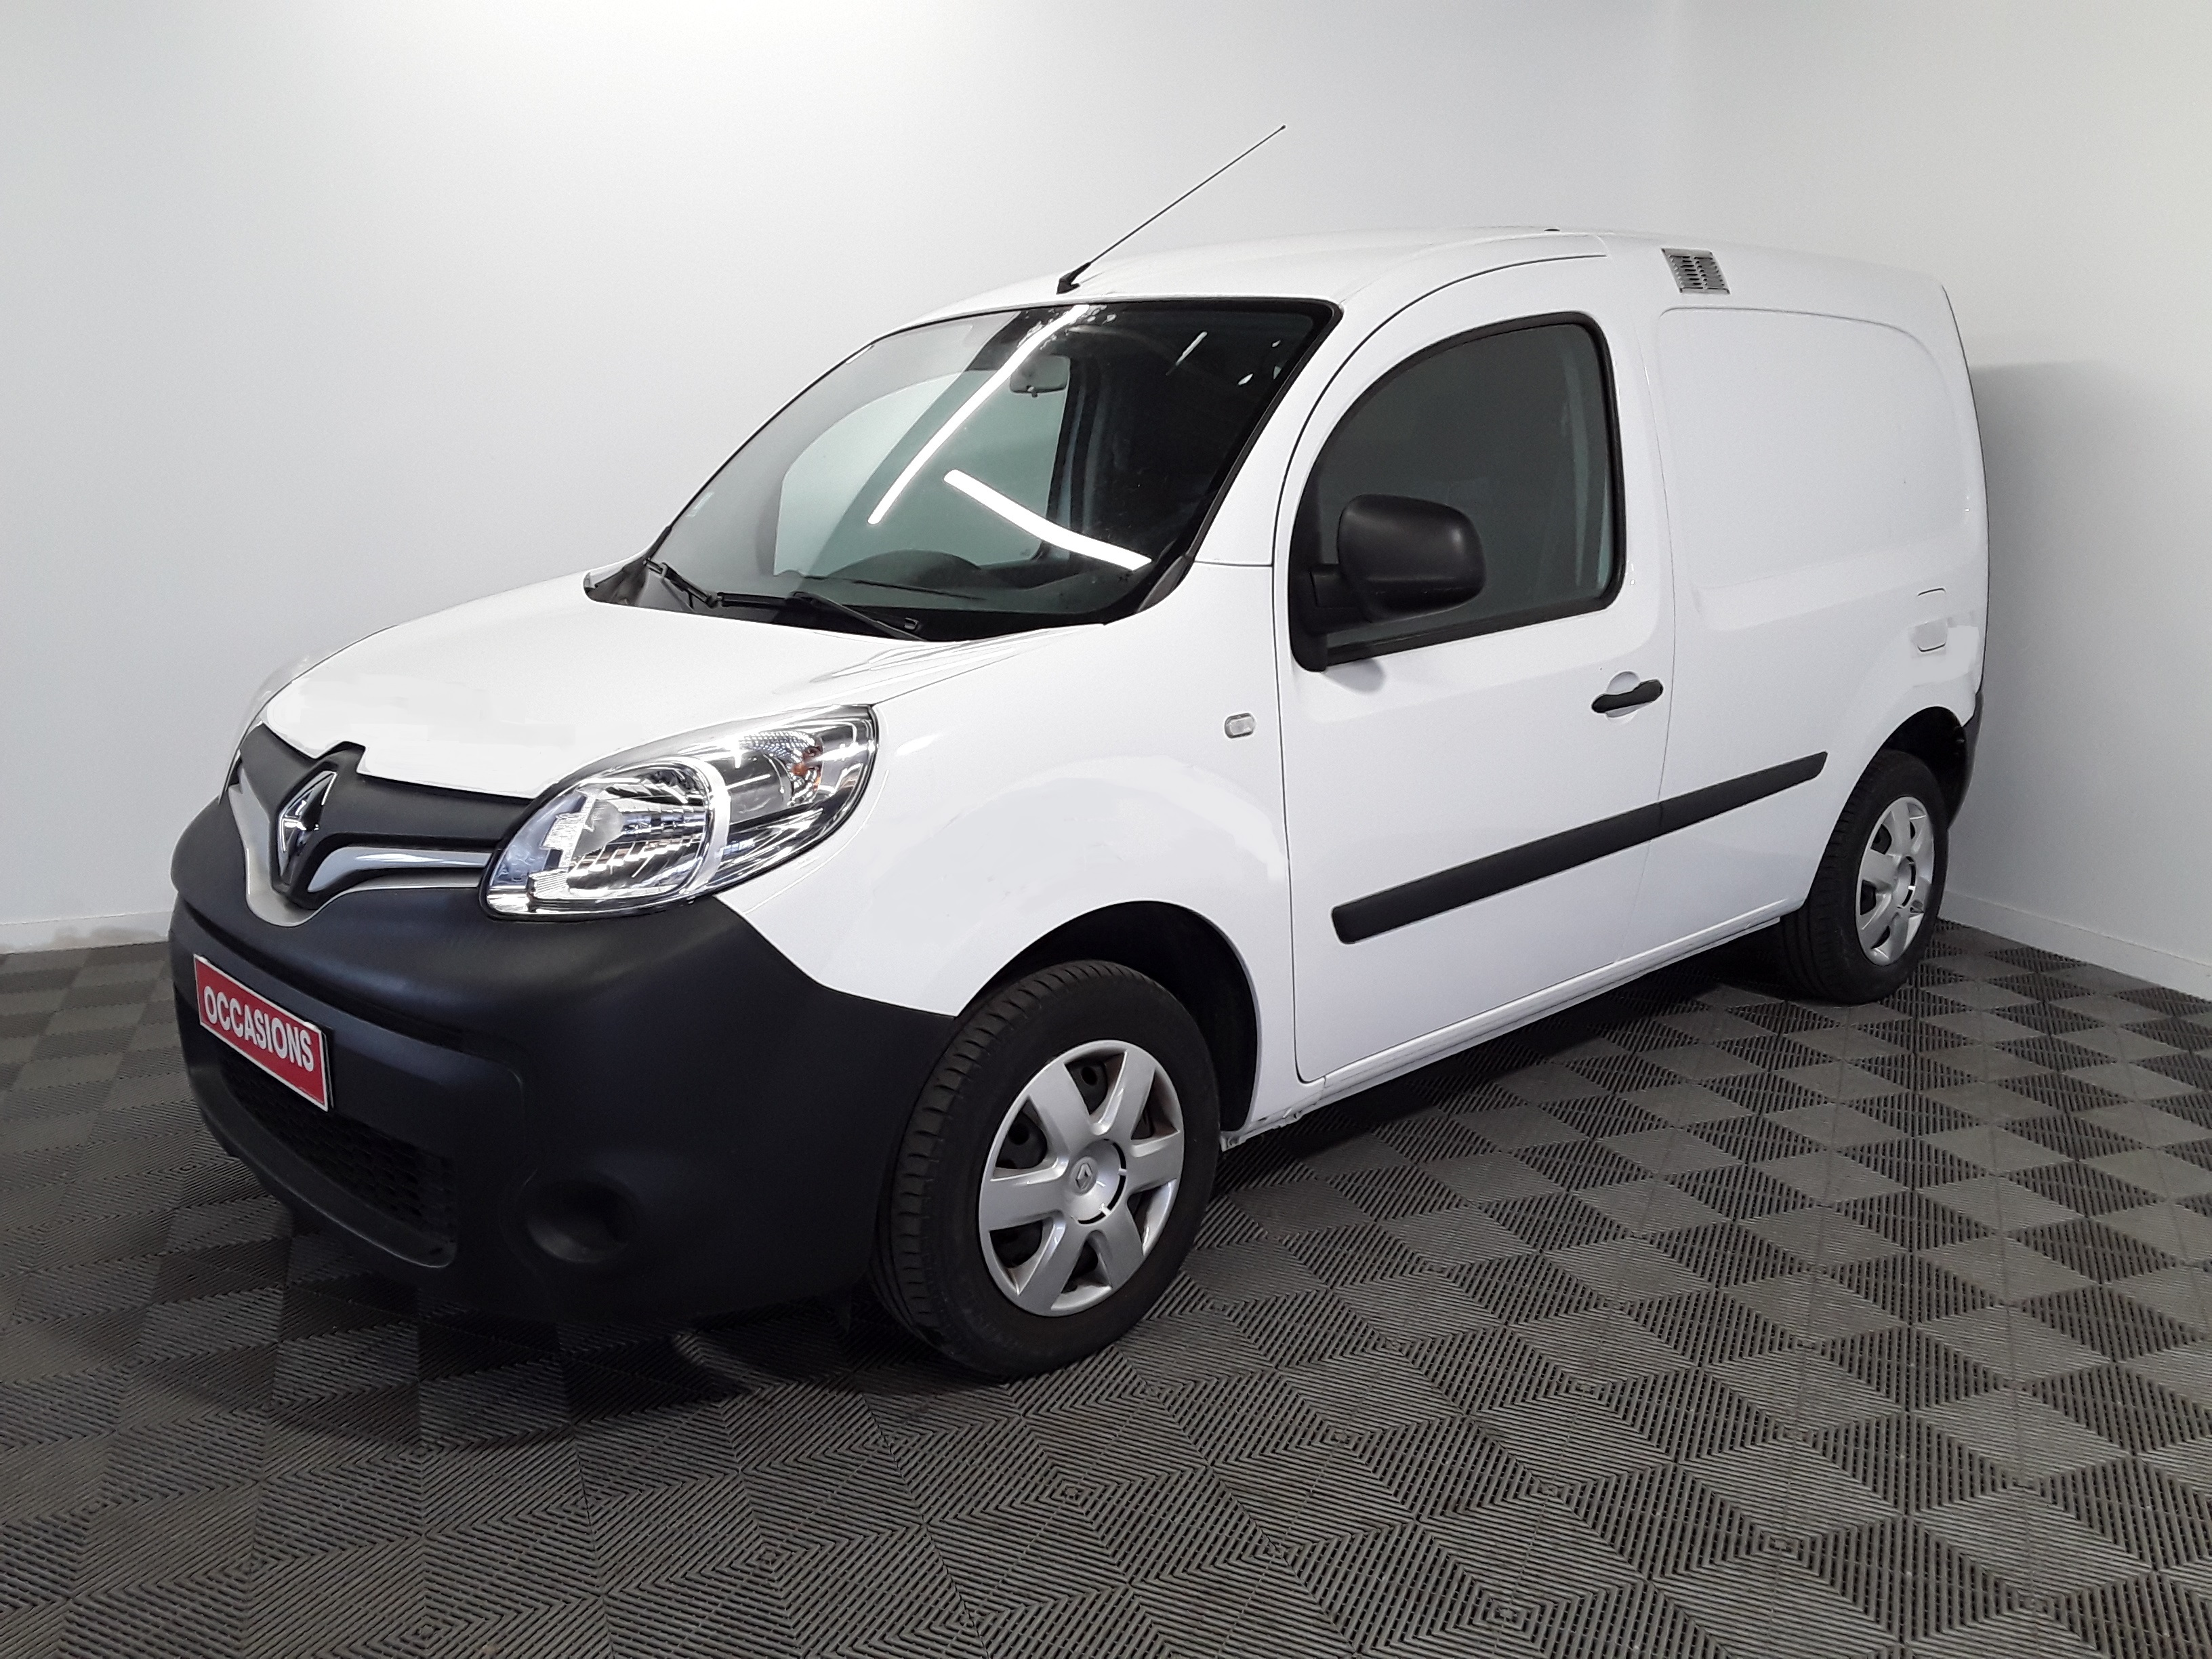 RENAULT KANGOO EXPRESS L1 1.5 DCI 75 ENERGY CONFORT d'occasion